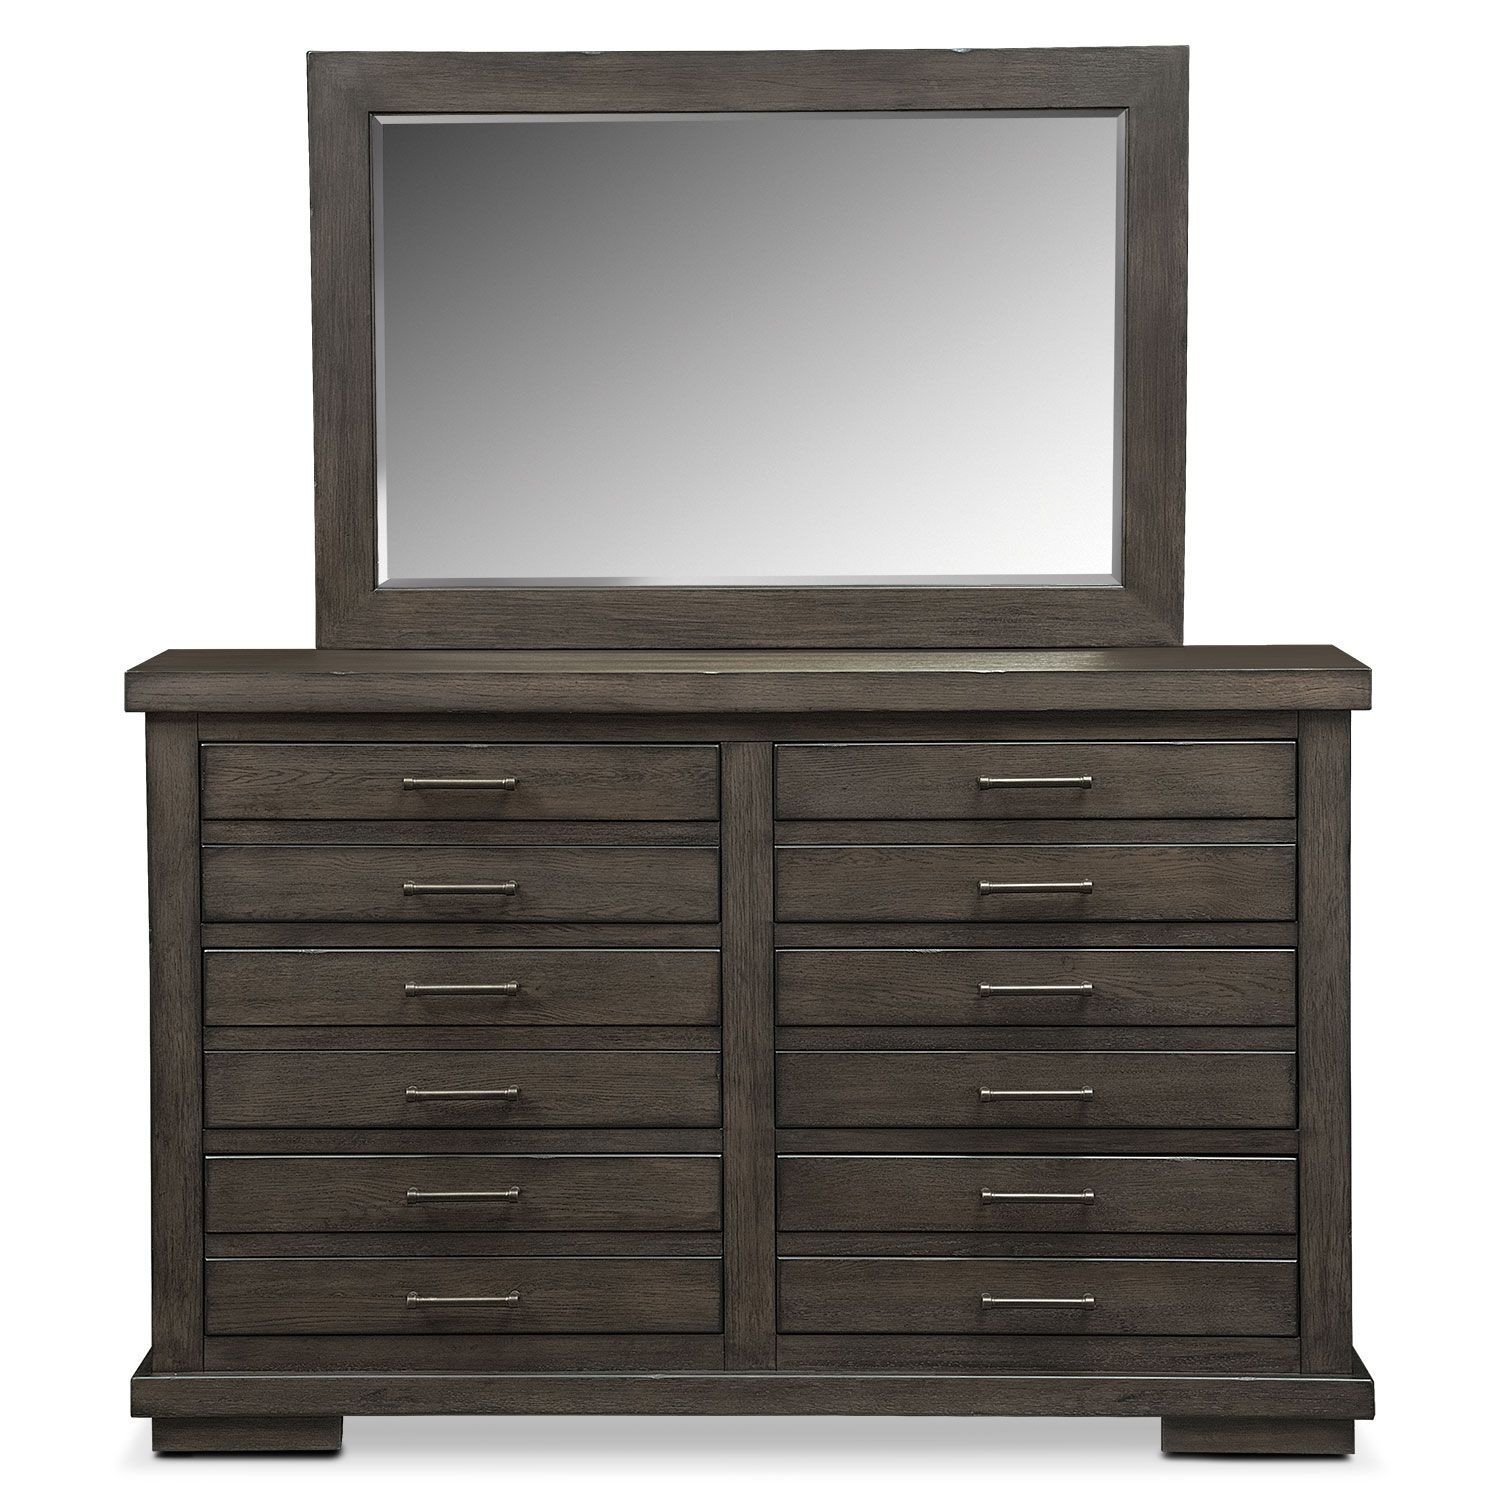 Value City Bedroom Furniture Lovely Jamestown Dresser and Mirror Sable